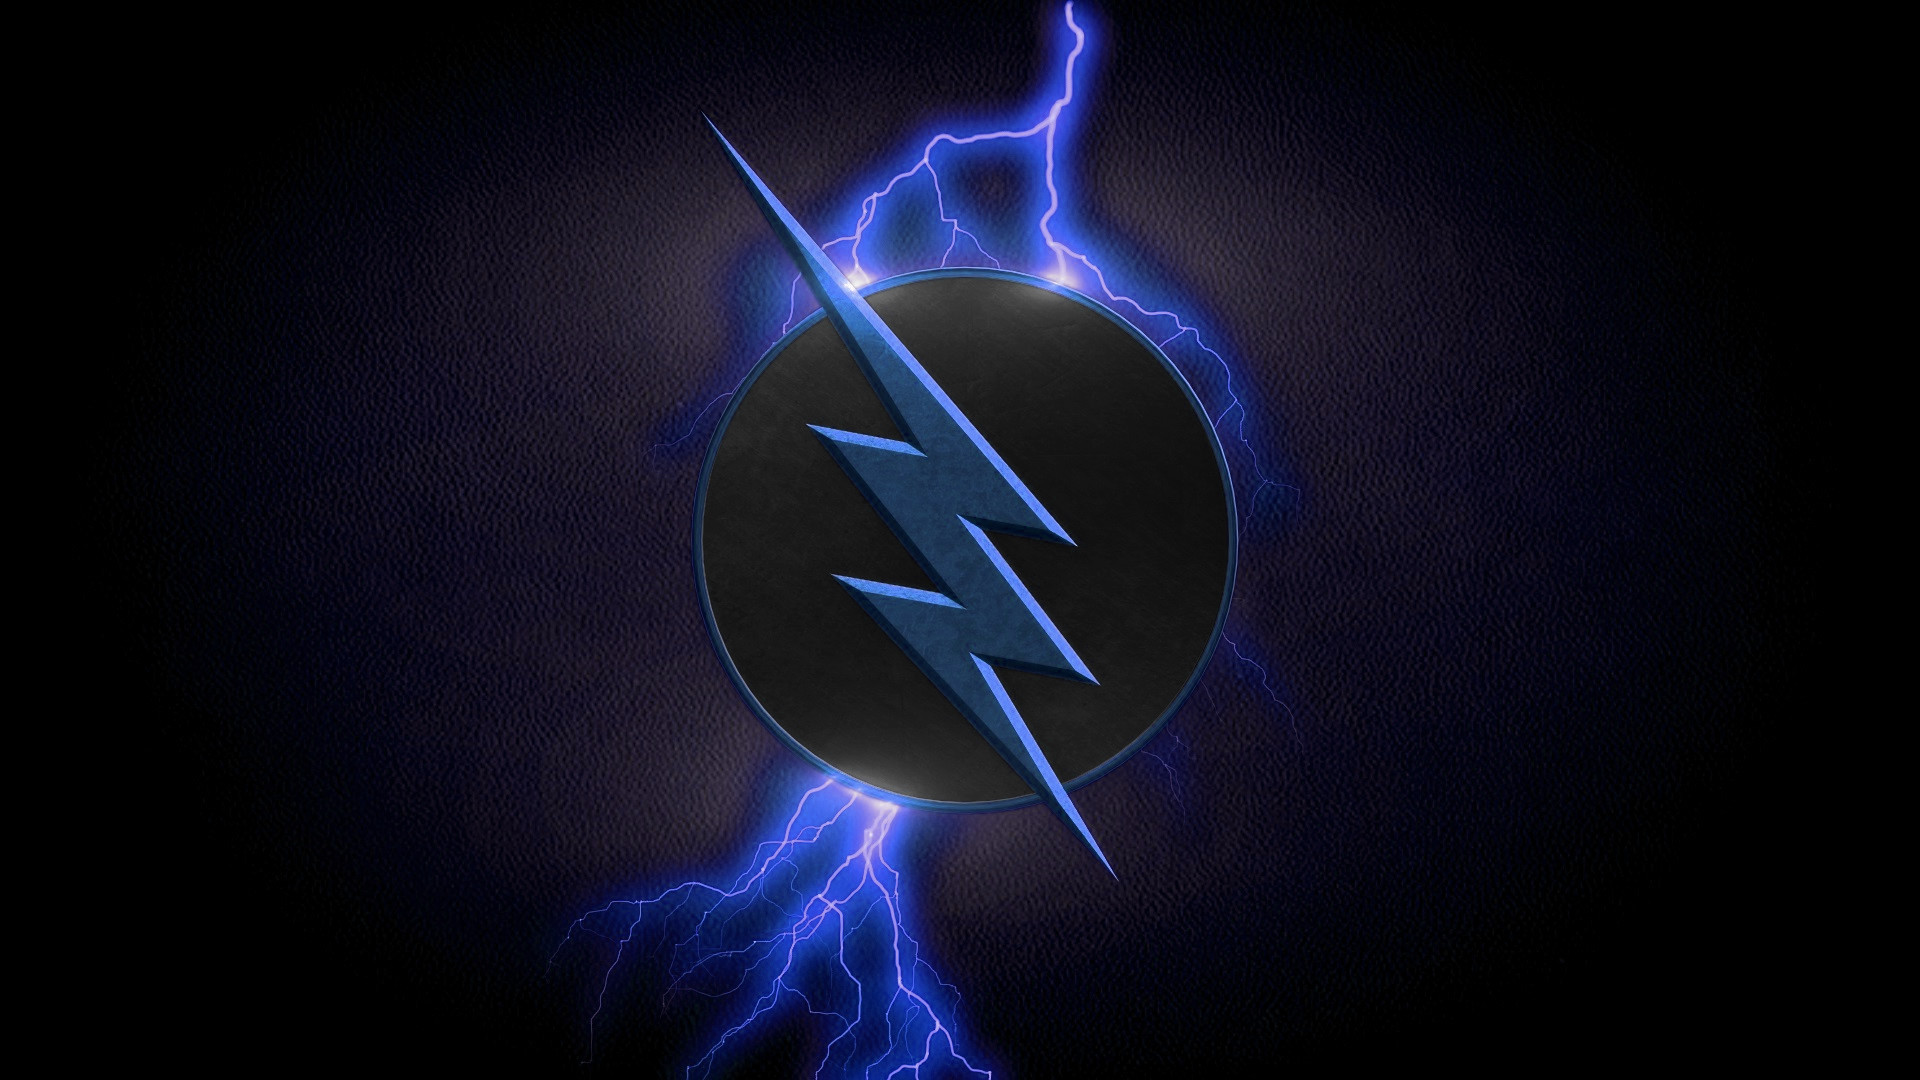 Flash CW Zoom Backgrounds (PC, Mobile, Gadgets) Compatible | 1920×1080